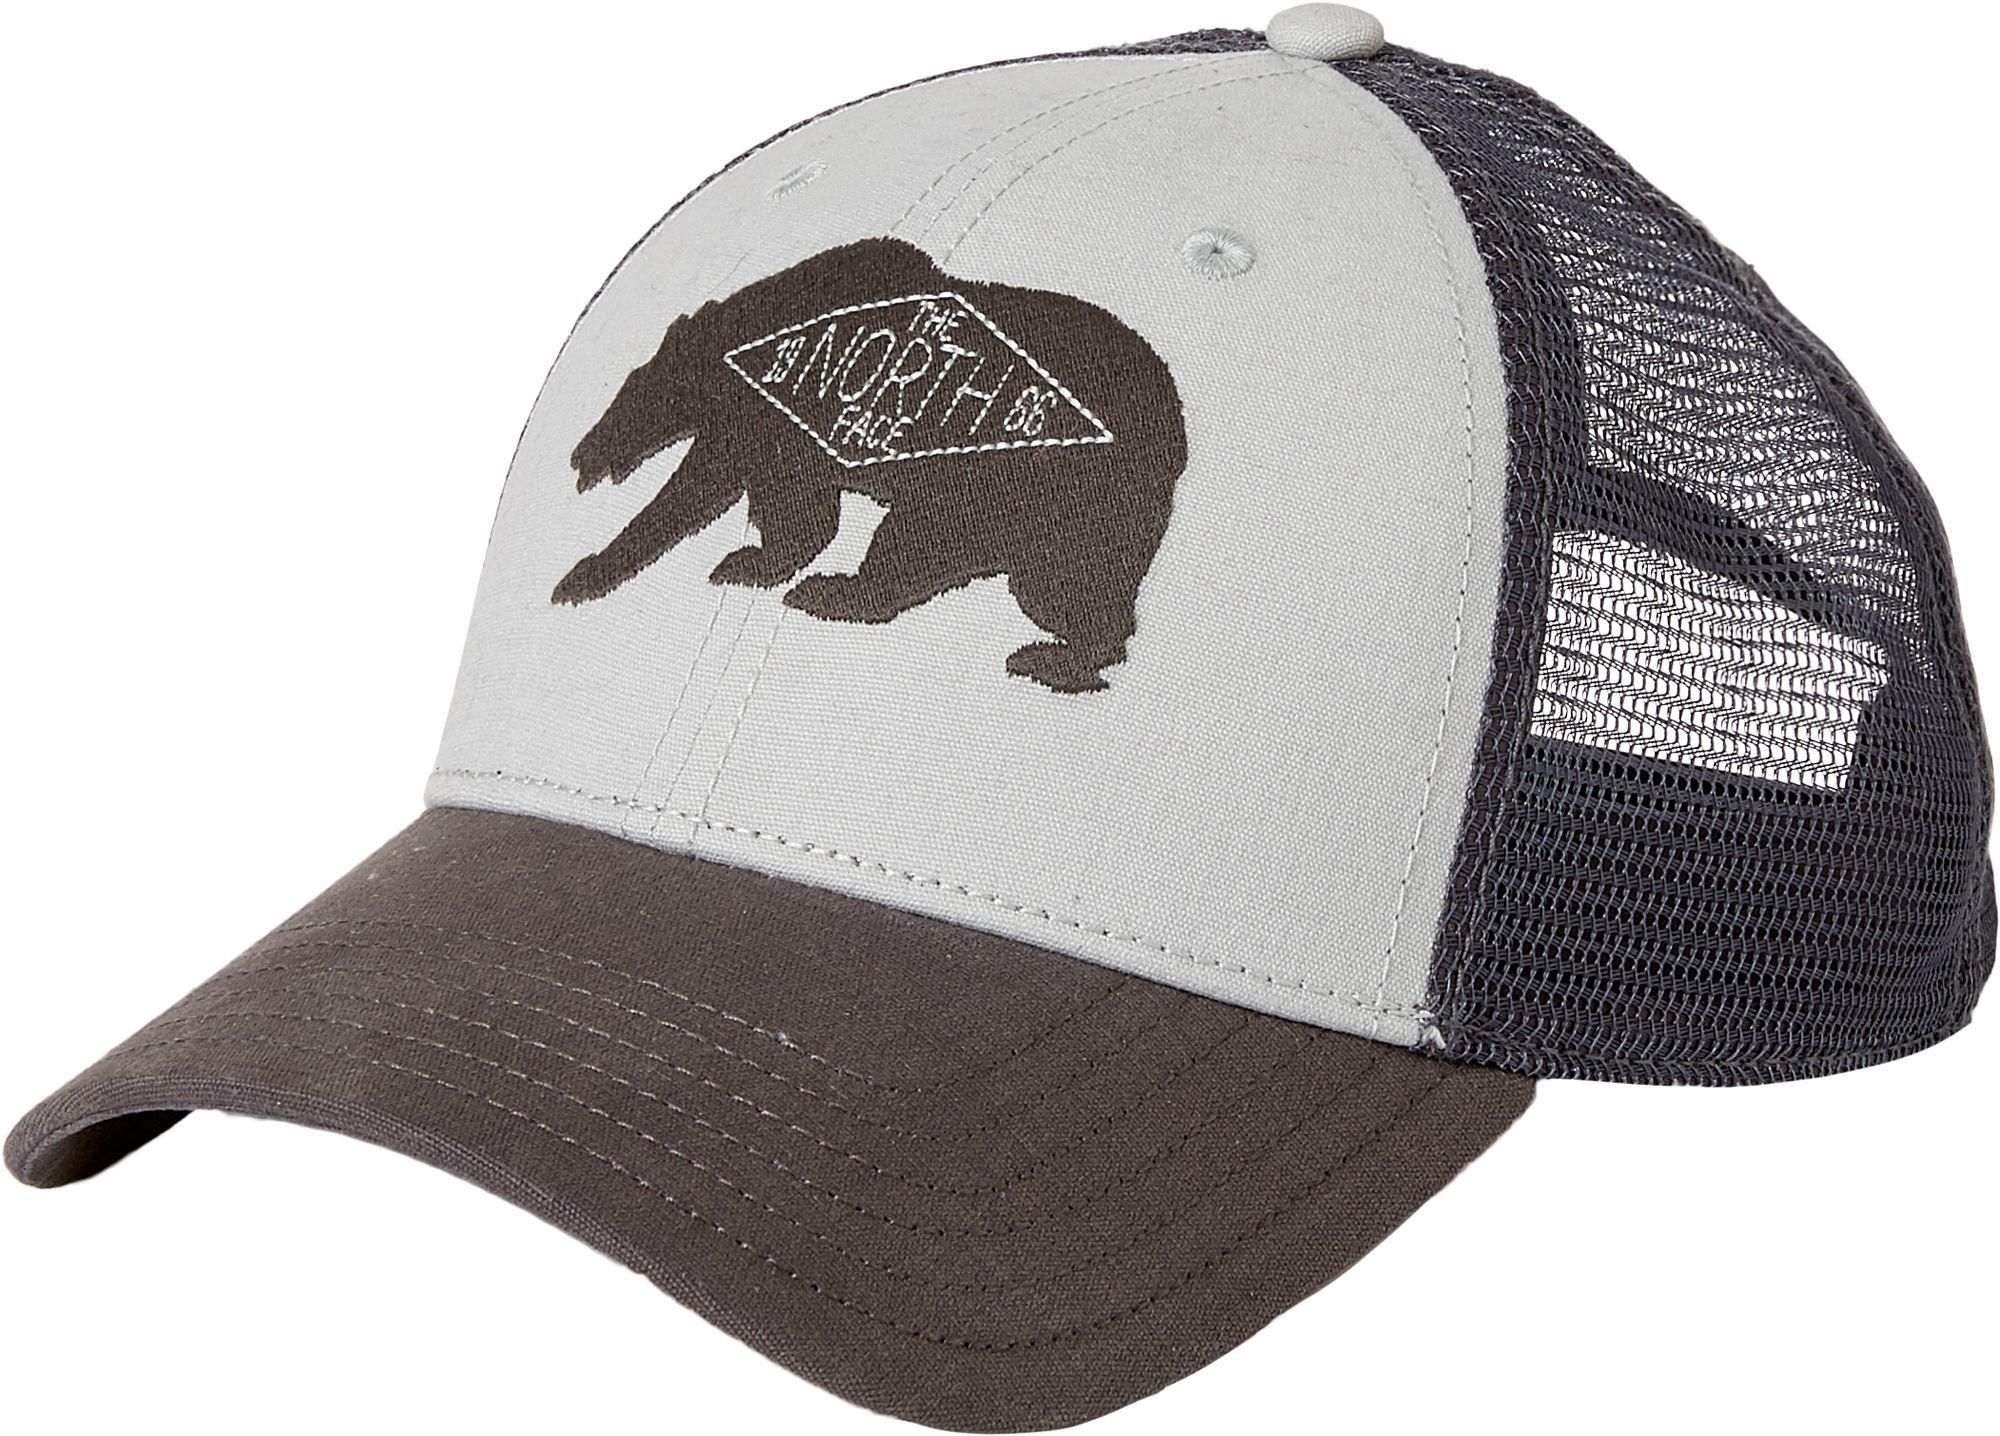 dd42b3169ce Lyst - The North Face Patches Trucker Hat in Gray for Men